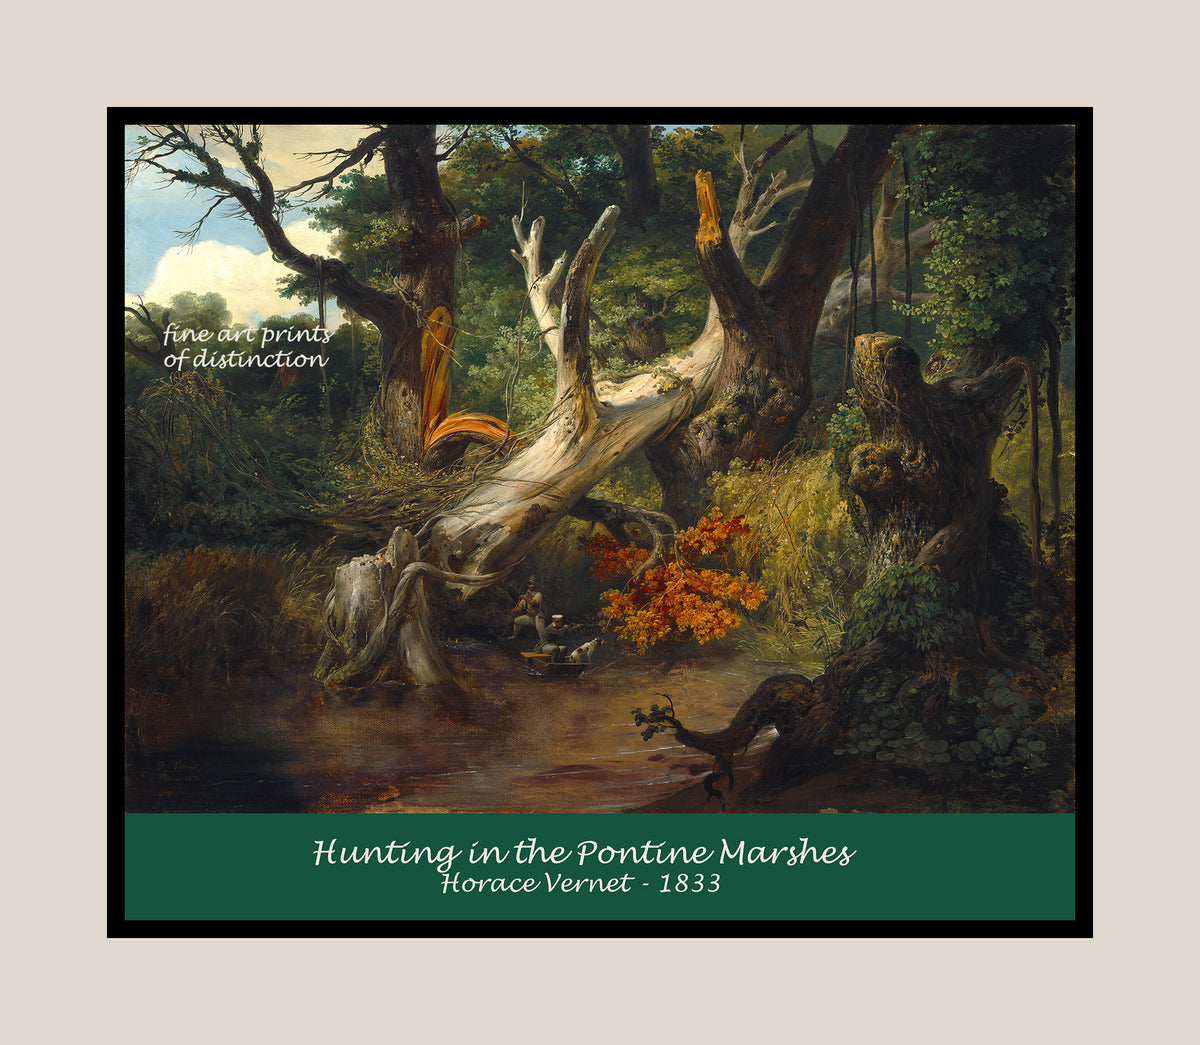 Hunting in the Pontine Marshes painted by Horace Vernet Premium Poster